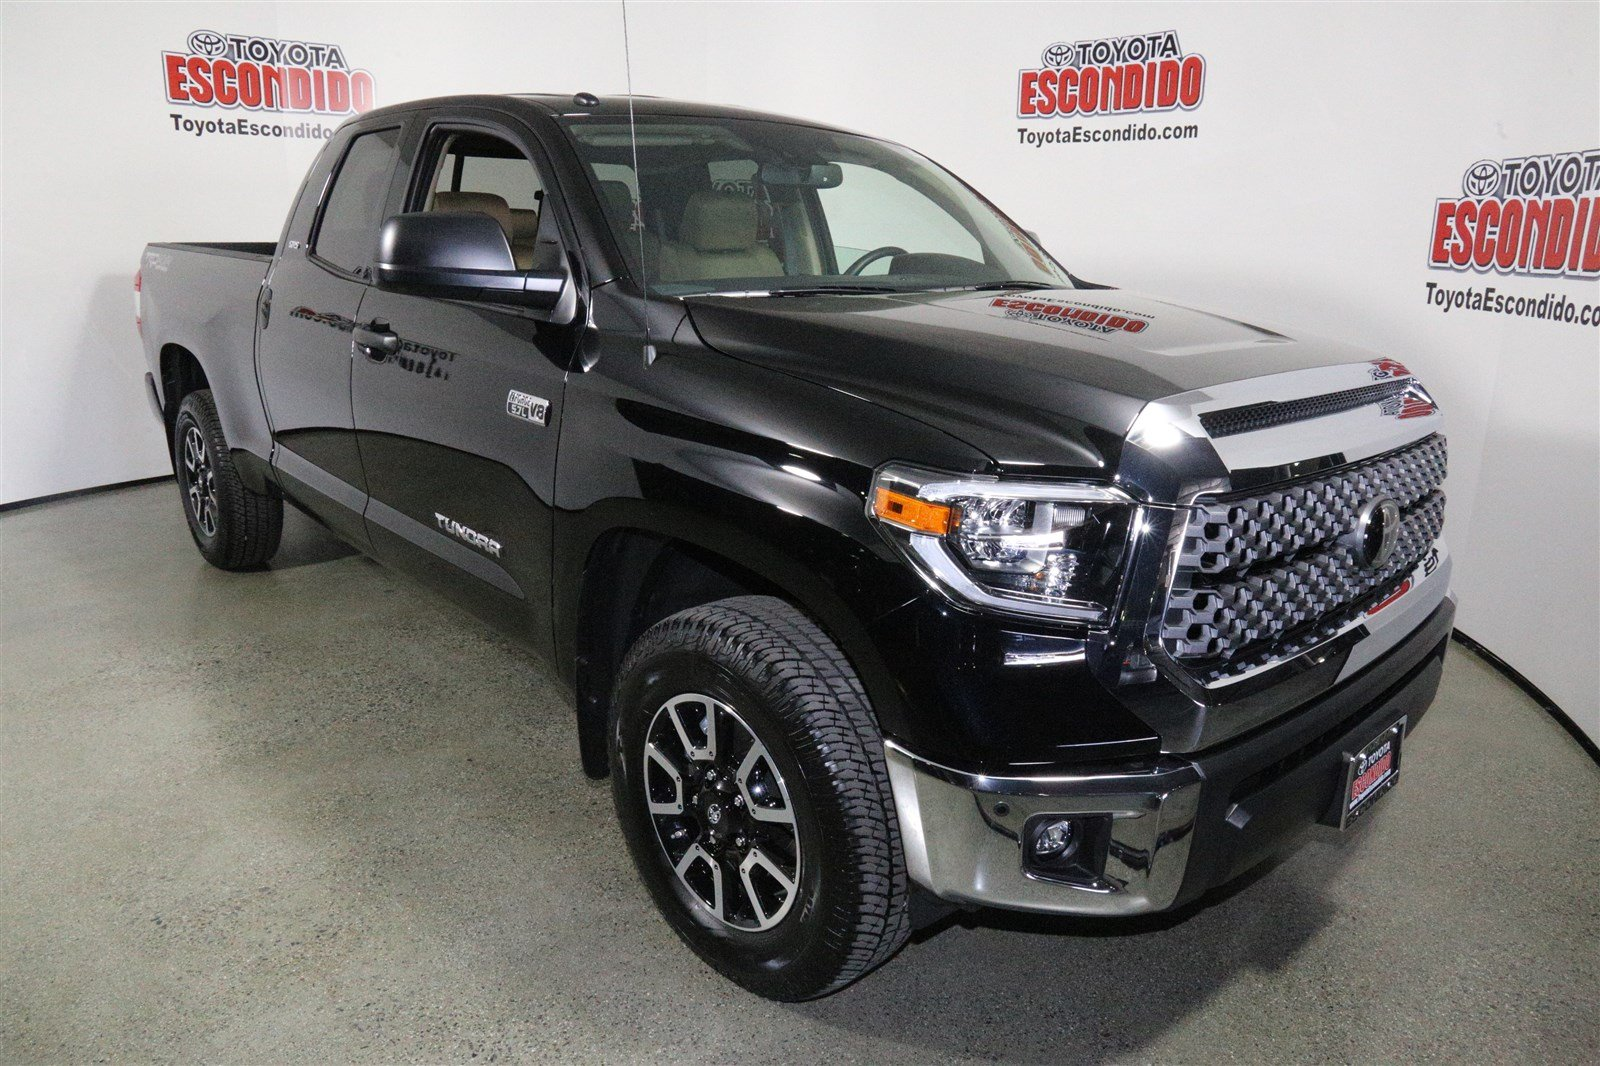 1794 Toyota Tundra >> New 2018 Toyota Tundra SR5 4WD Double Cab Pickup in Escondido #1015610 | Toyota Escondido